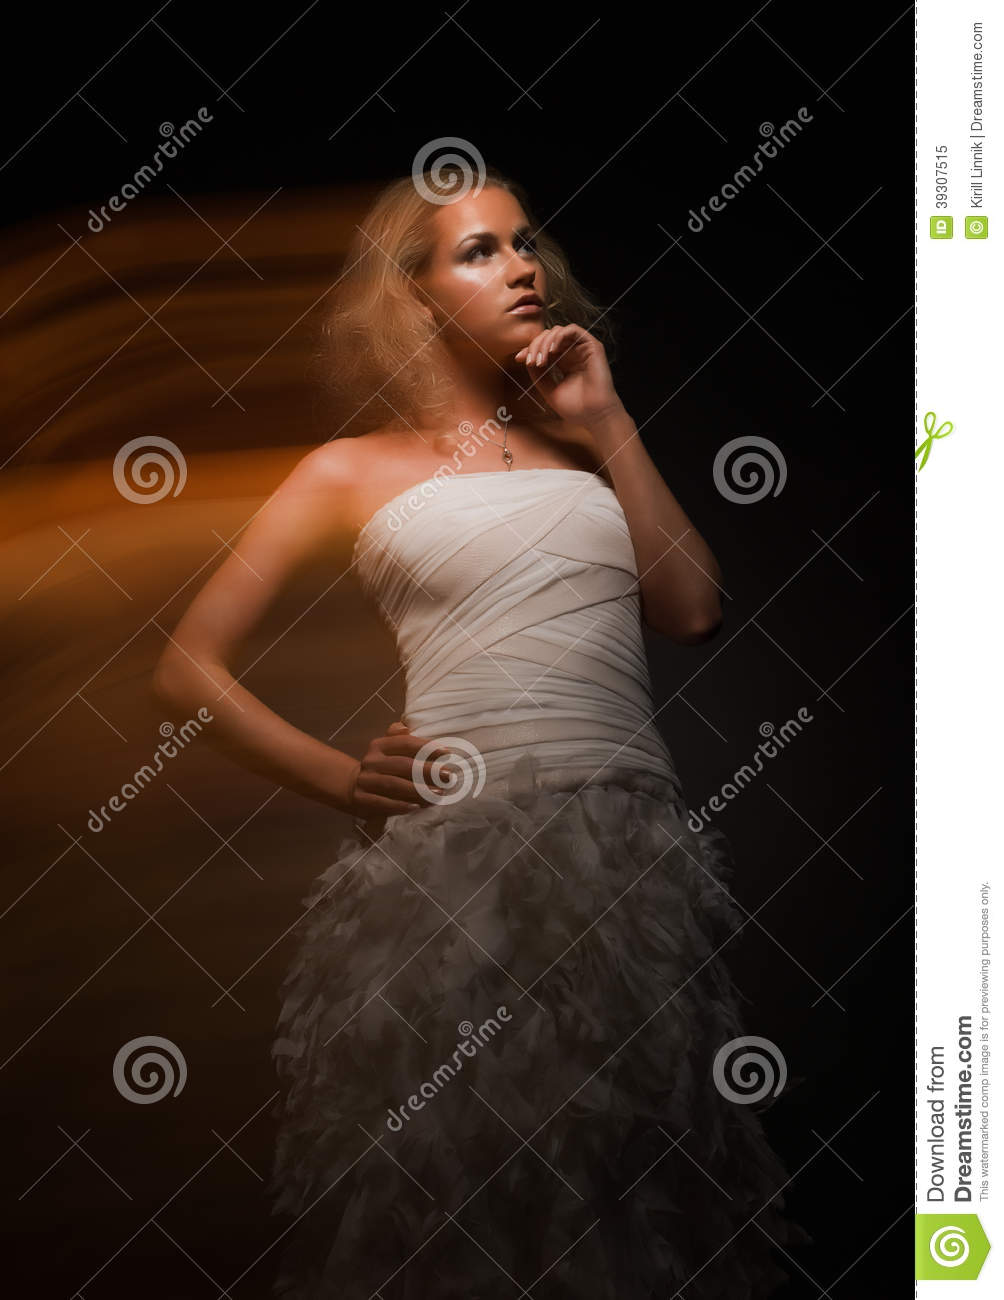 4da56d147d7 Gorgeous Indecisive Girl In White Dress Stock Image - Image of human ...